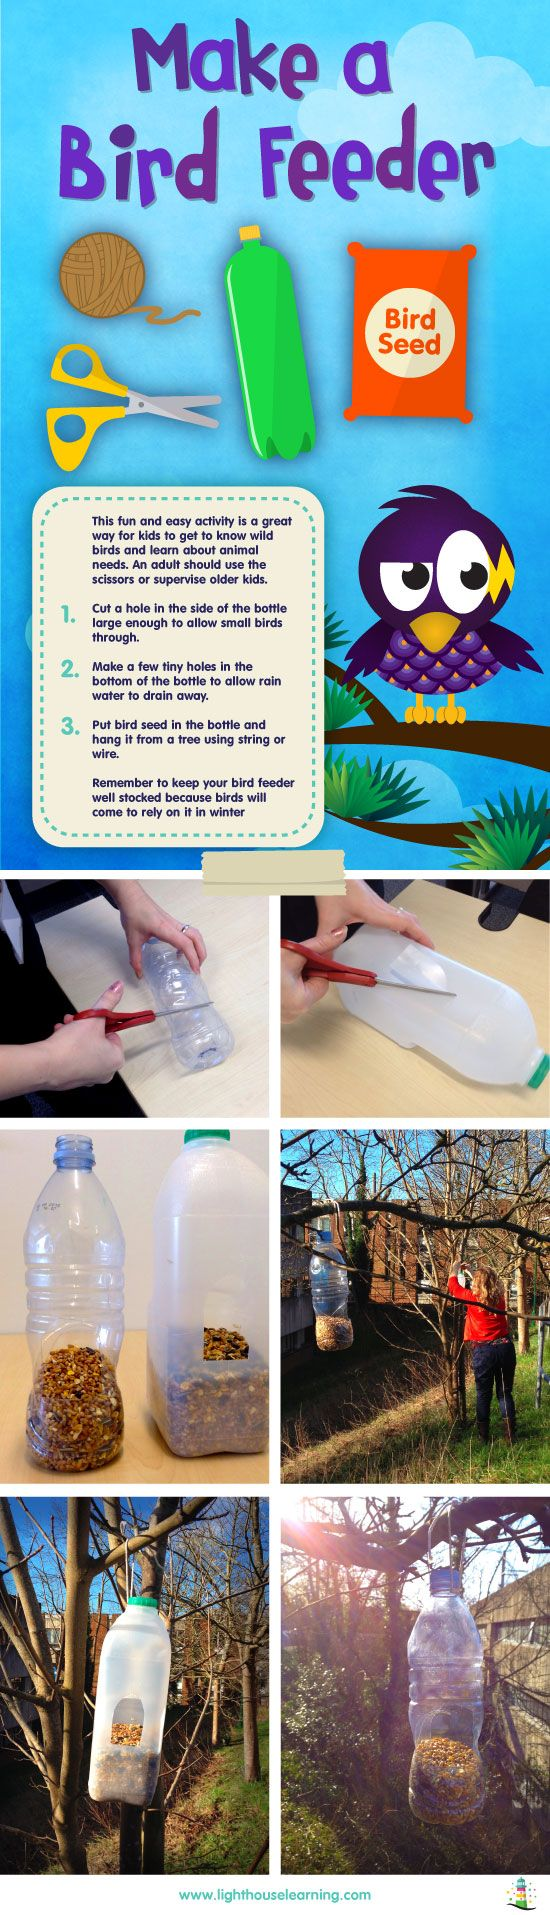 110 best earth day images on pinterest earth day crafts kids